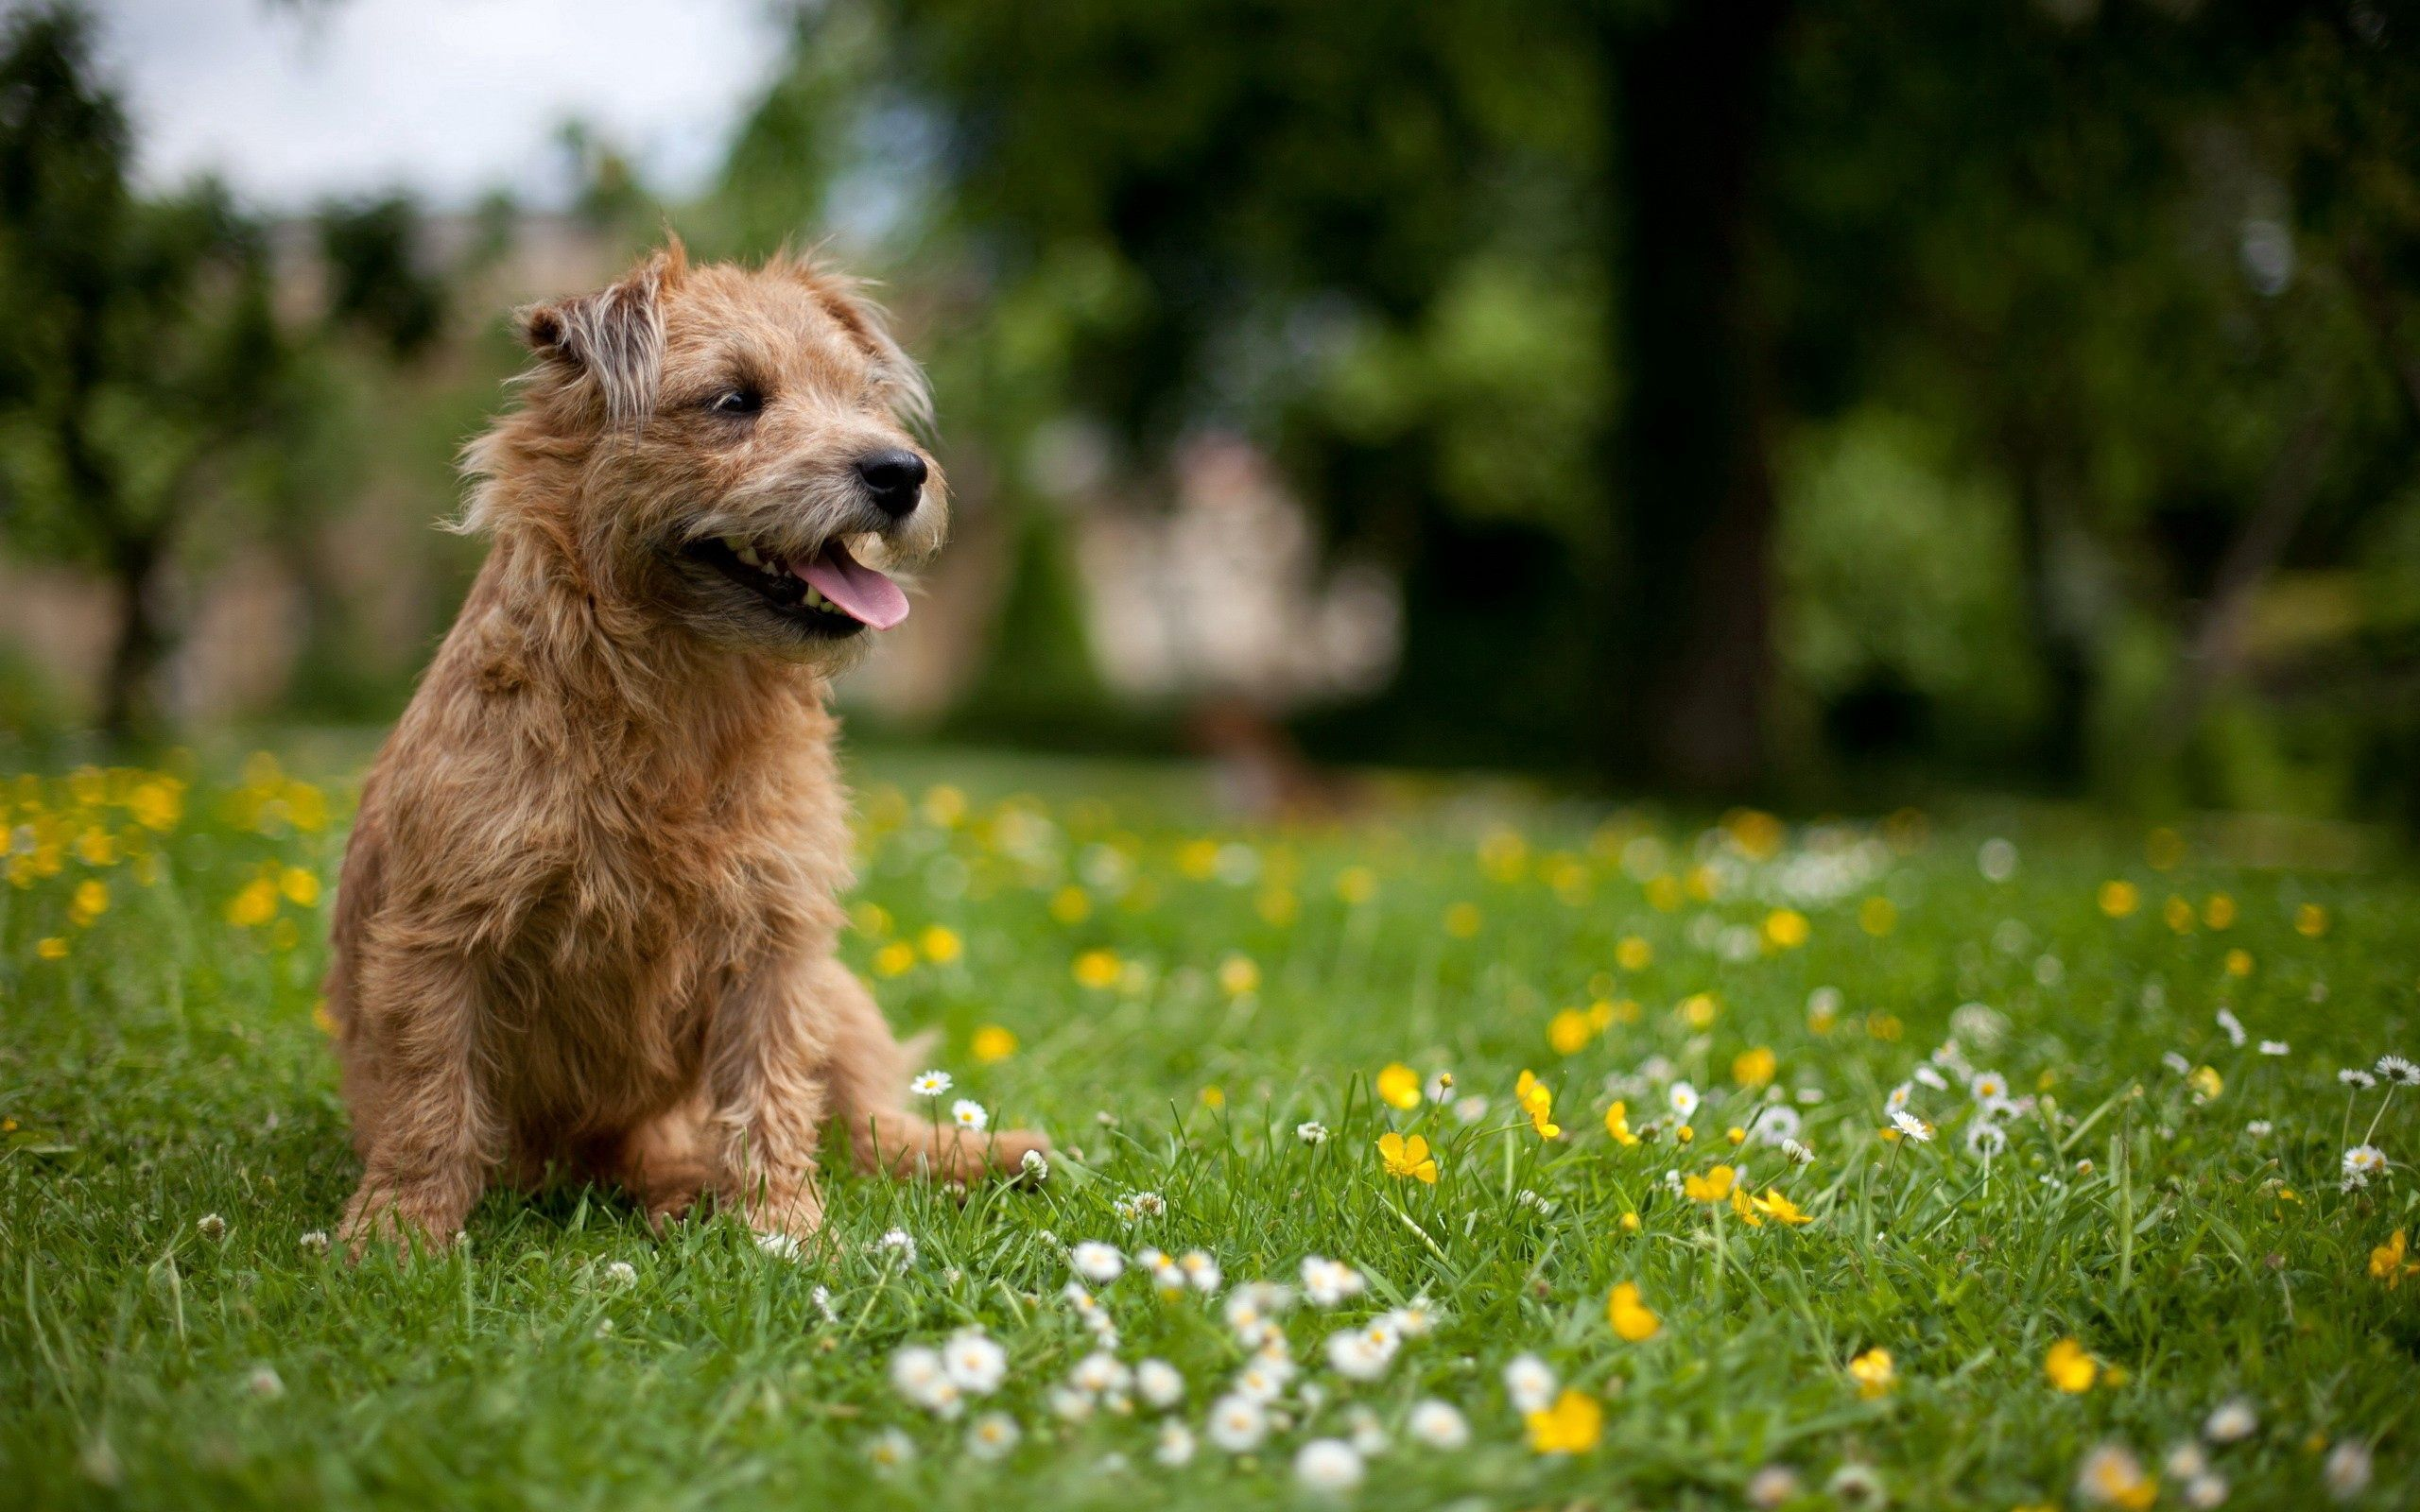 130315 download wallpaper Animals, Dog, Grass, Polyana, Glade, Flowers screensavers and pictures for free